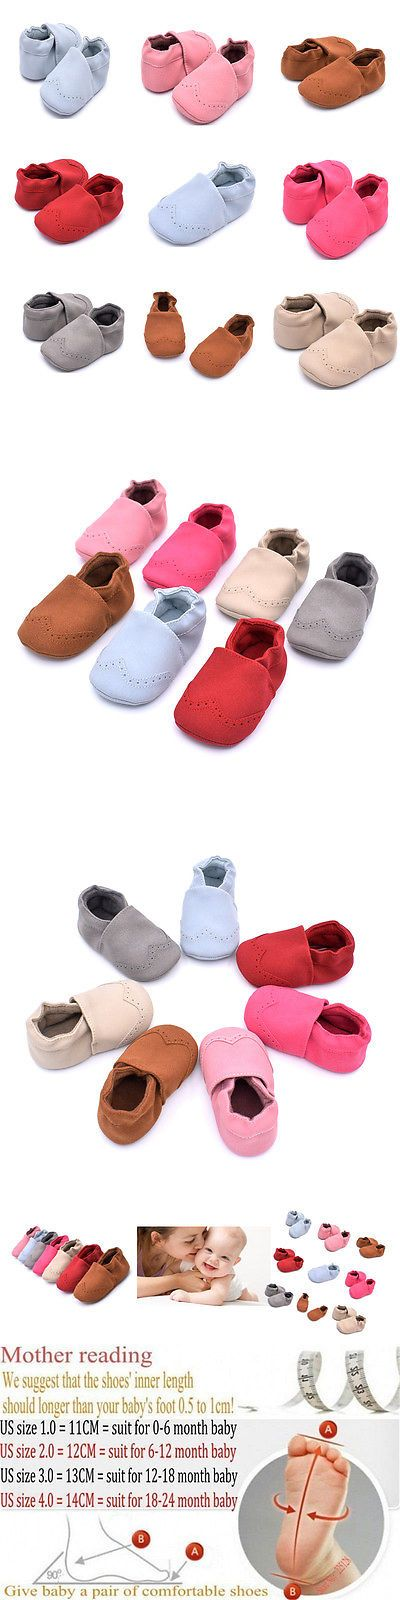 Baby Girls Shoes: Baby Soft Sole Suede/Leather Shoes Infant Boy Girl Toddler Moccasin 0-18M BUY IT NOW ONLY: $3.59